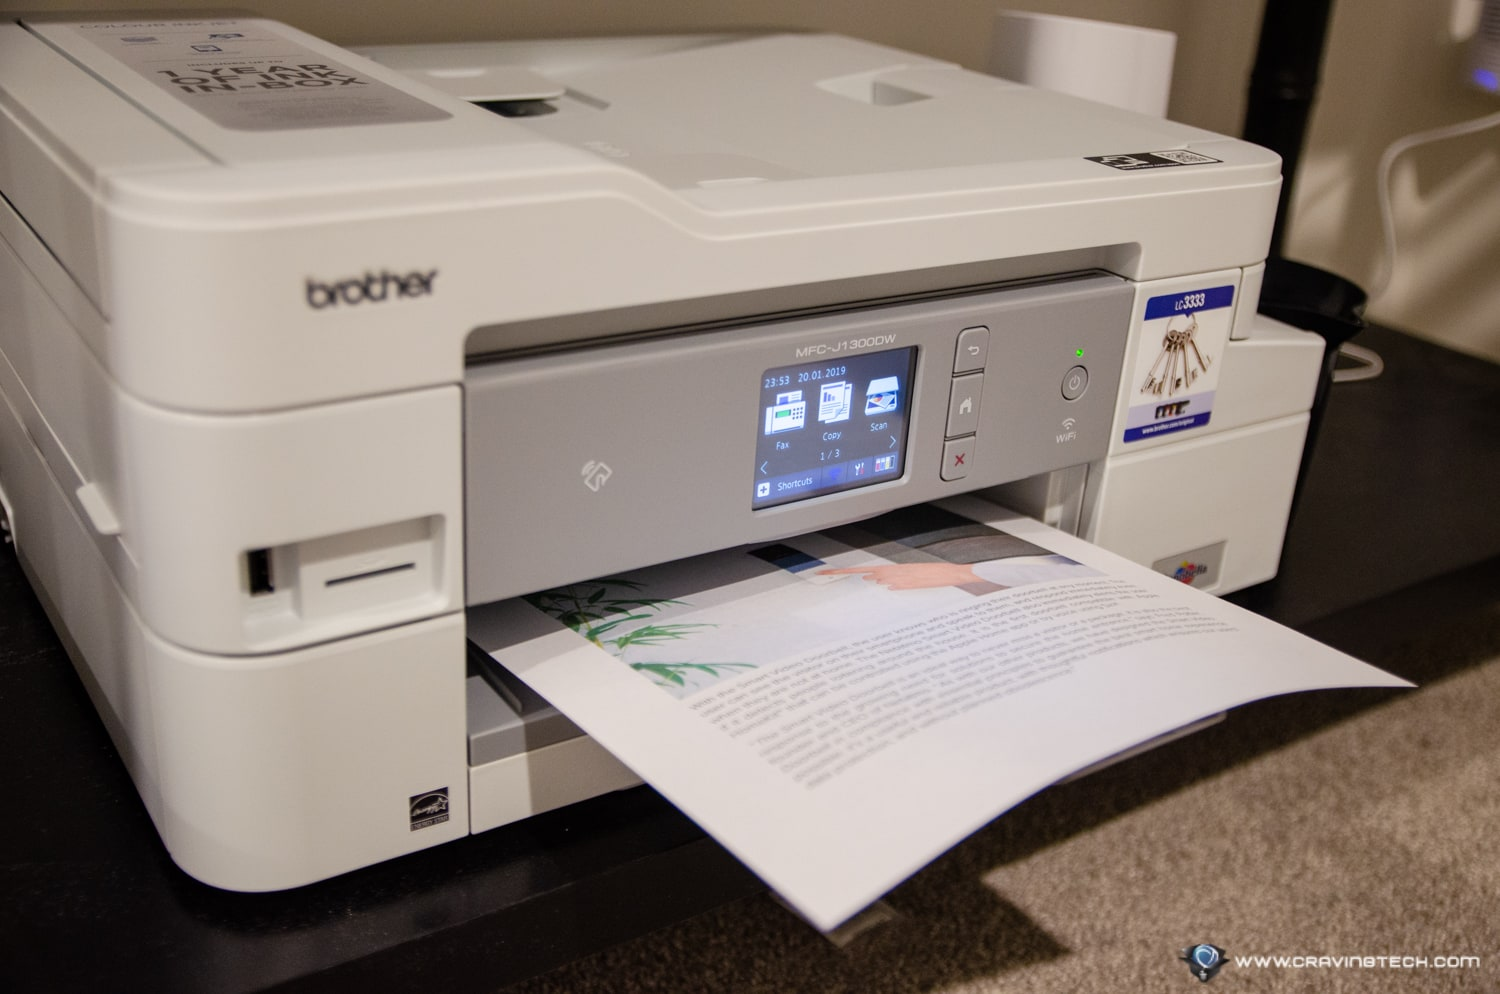 Brother MFC-J1300DW printing